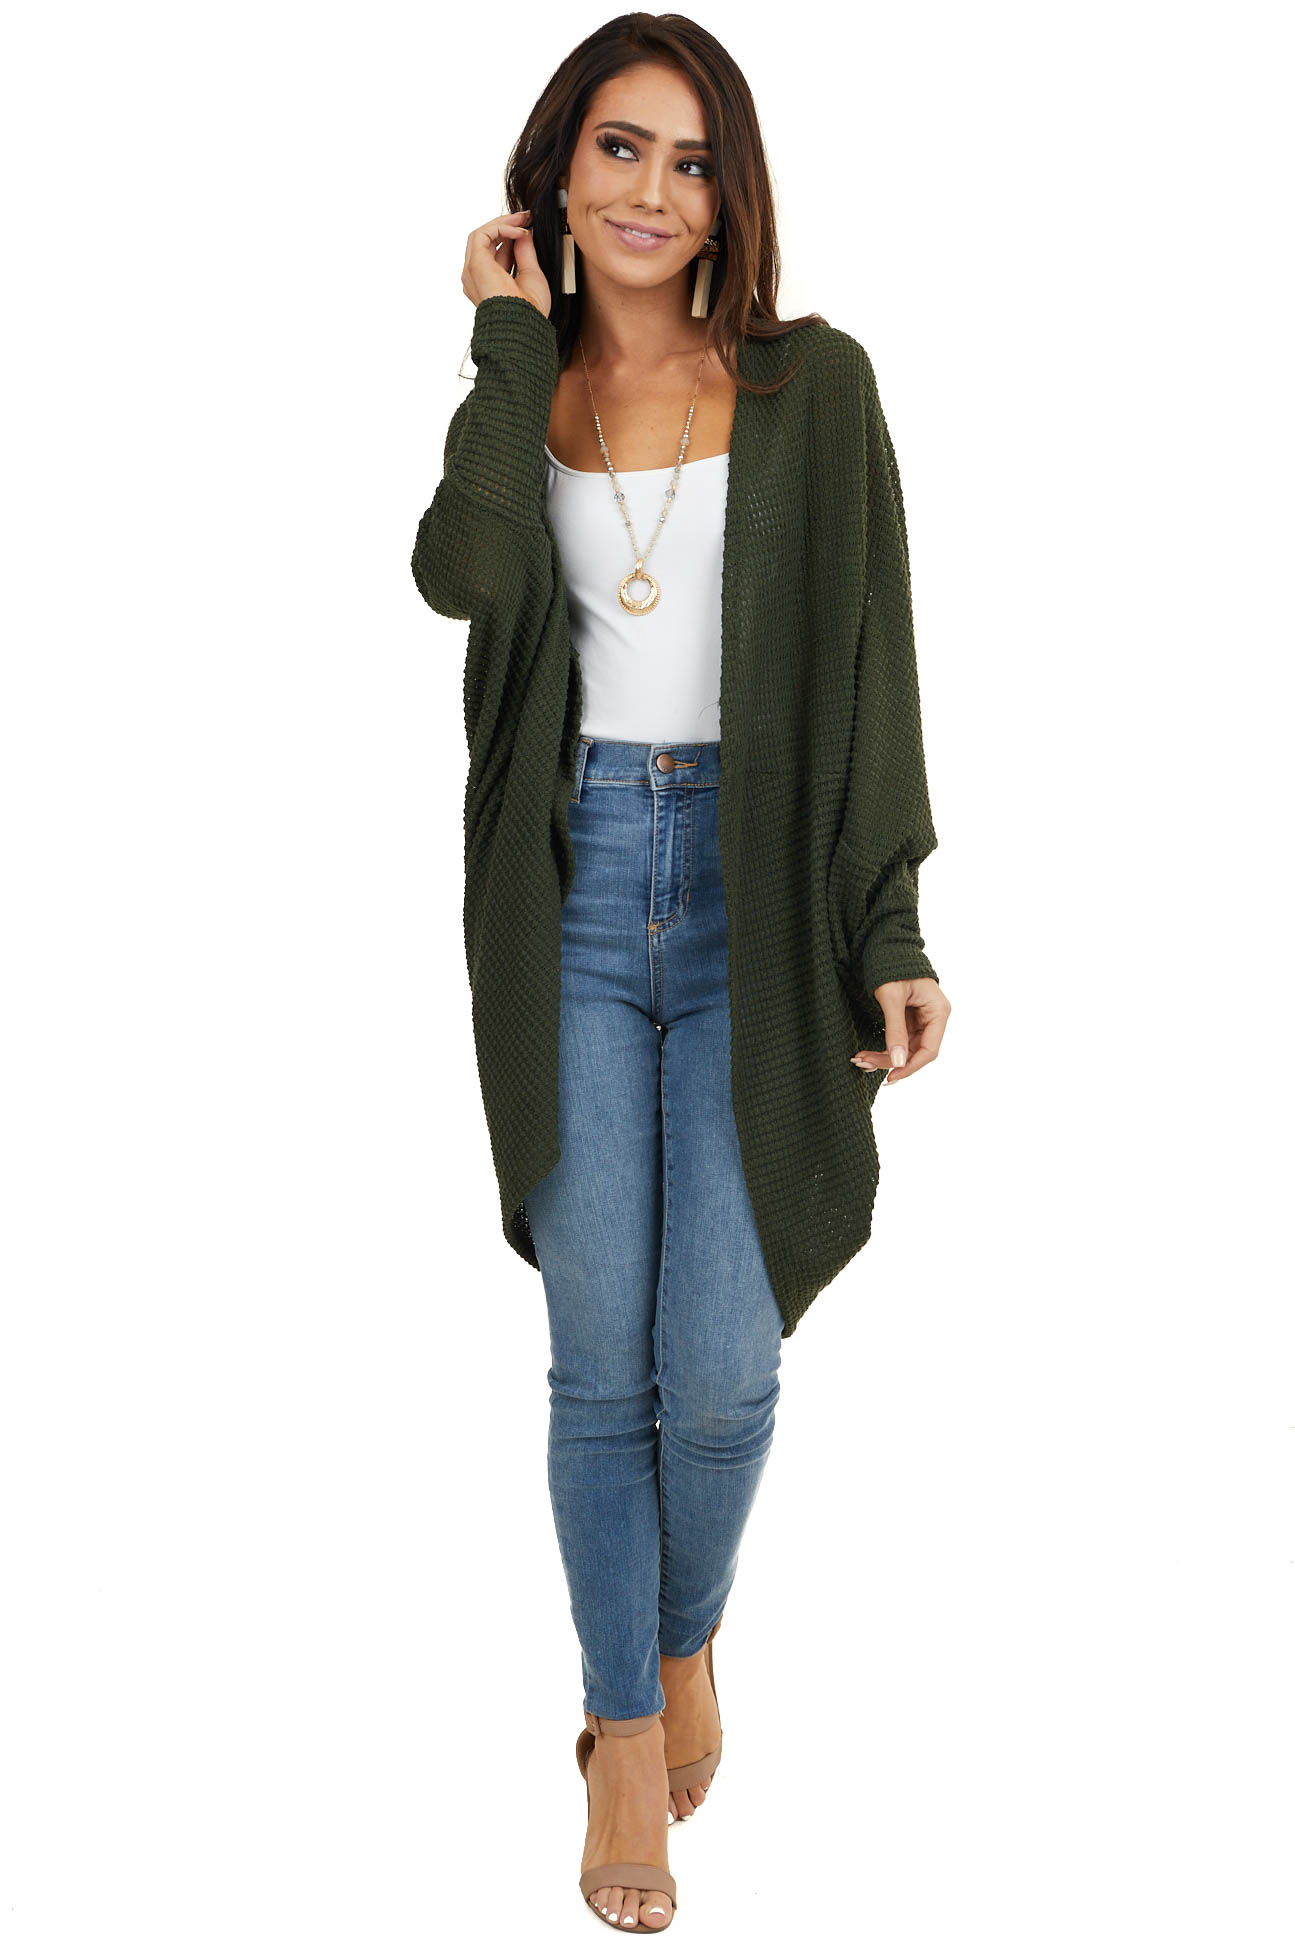 Hunter Green Waffle Knit 3/4 Sleeve Cardigan with Cocoon Hem